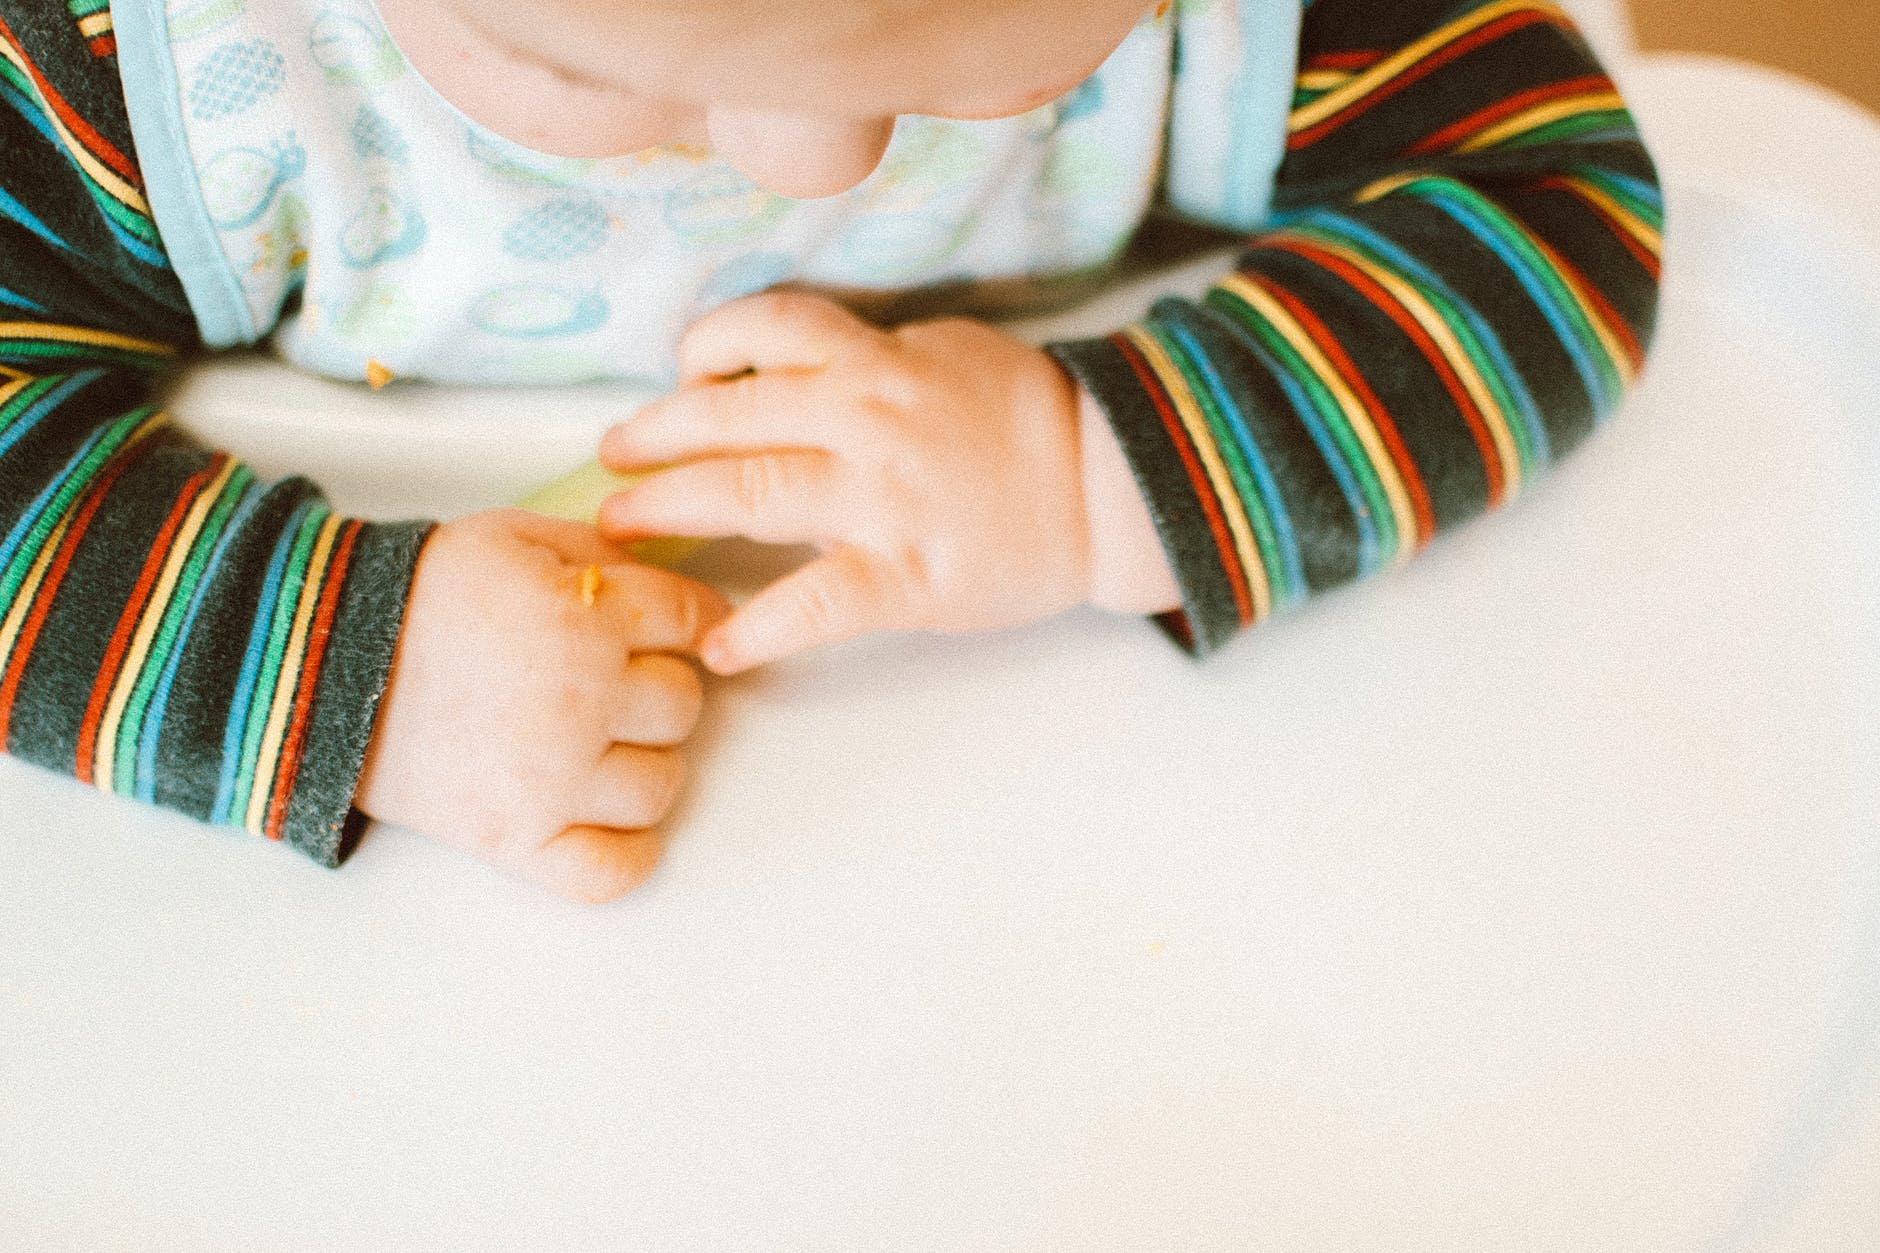 photo of kid wearing colorful long sleeves sitting on high chair